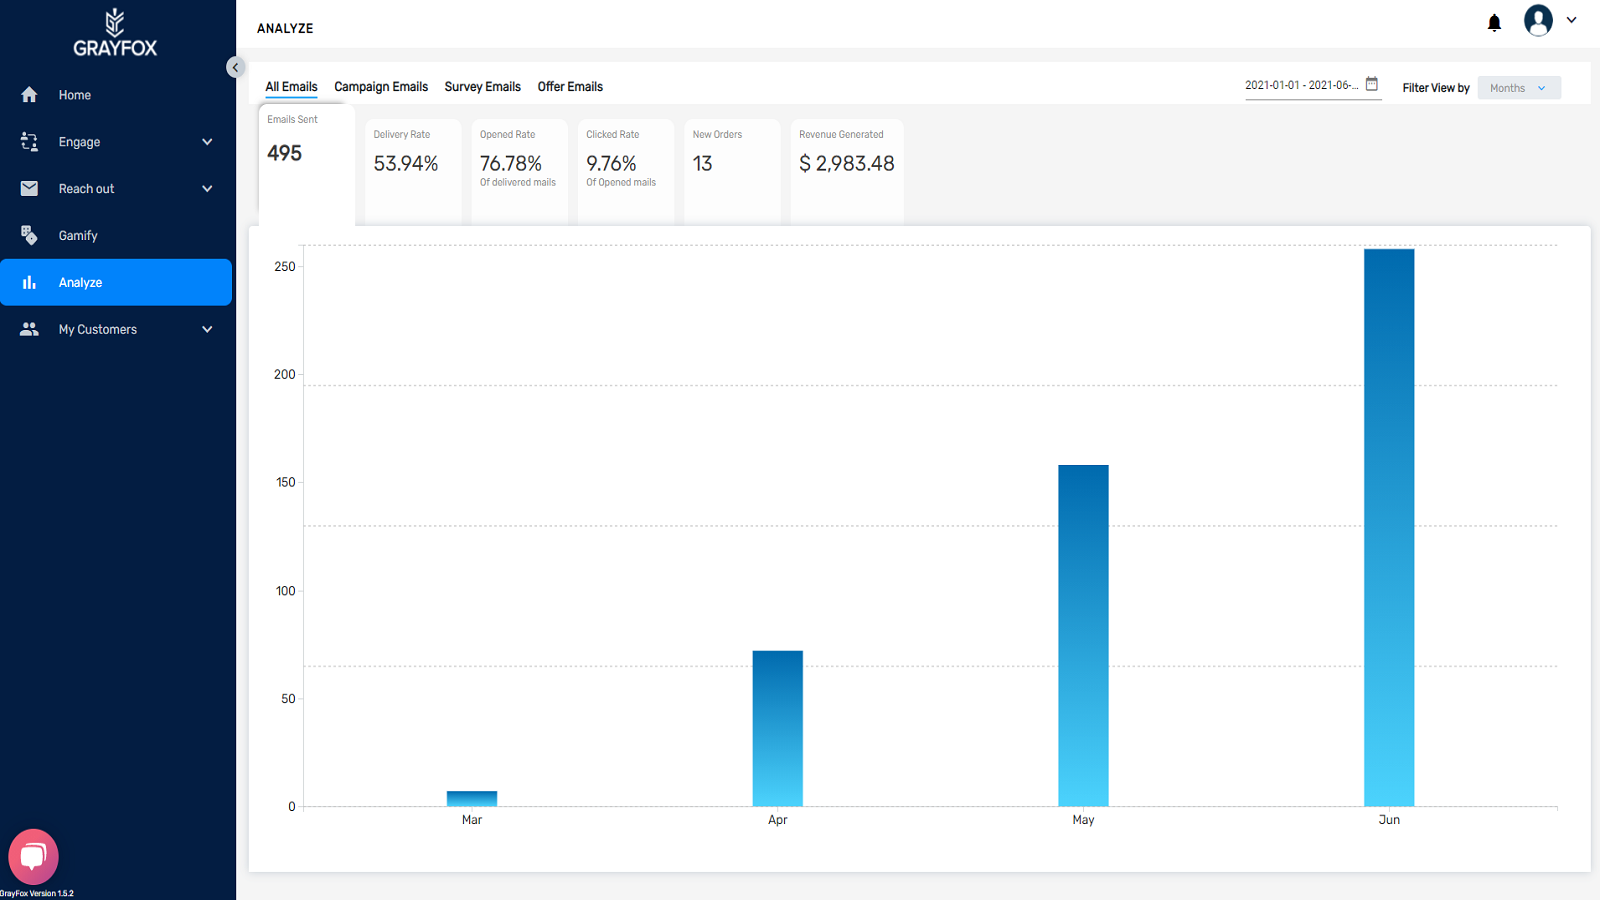 Analyze your email performance